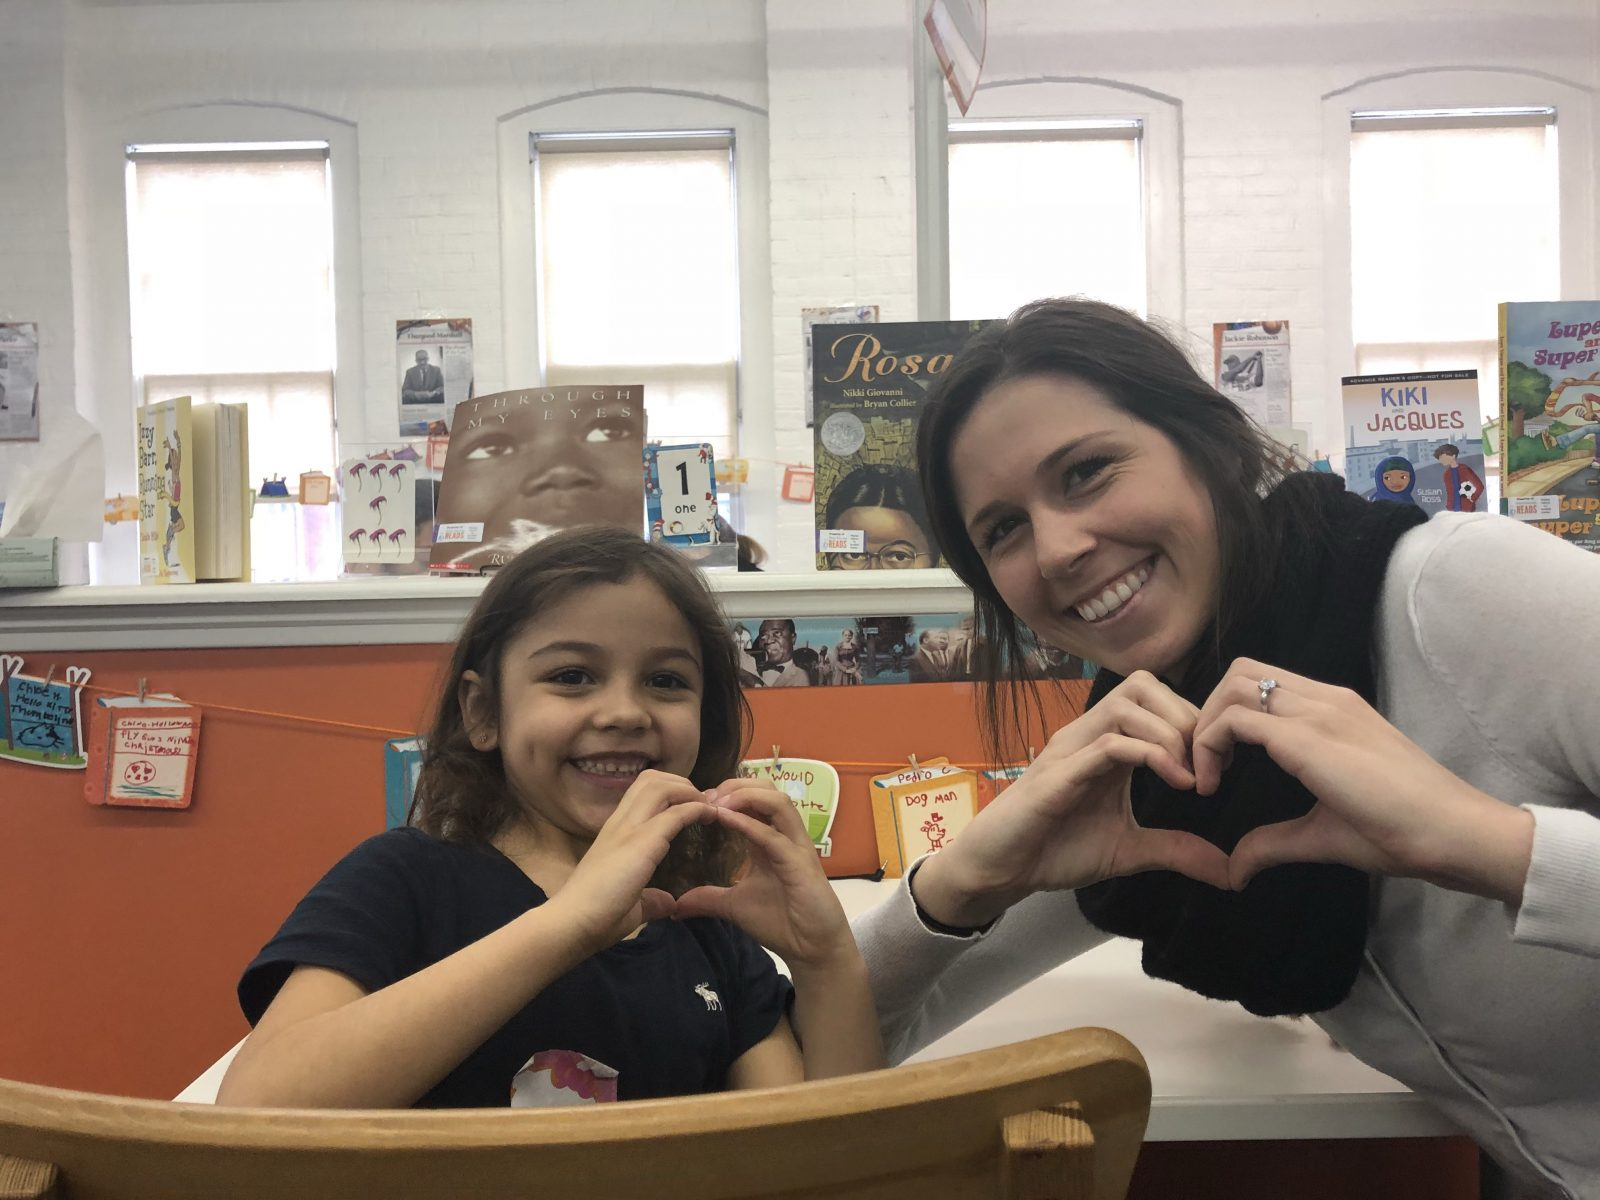 NHR student and tutor make heart signs with their hands.